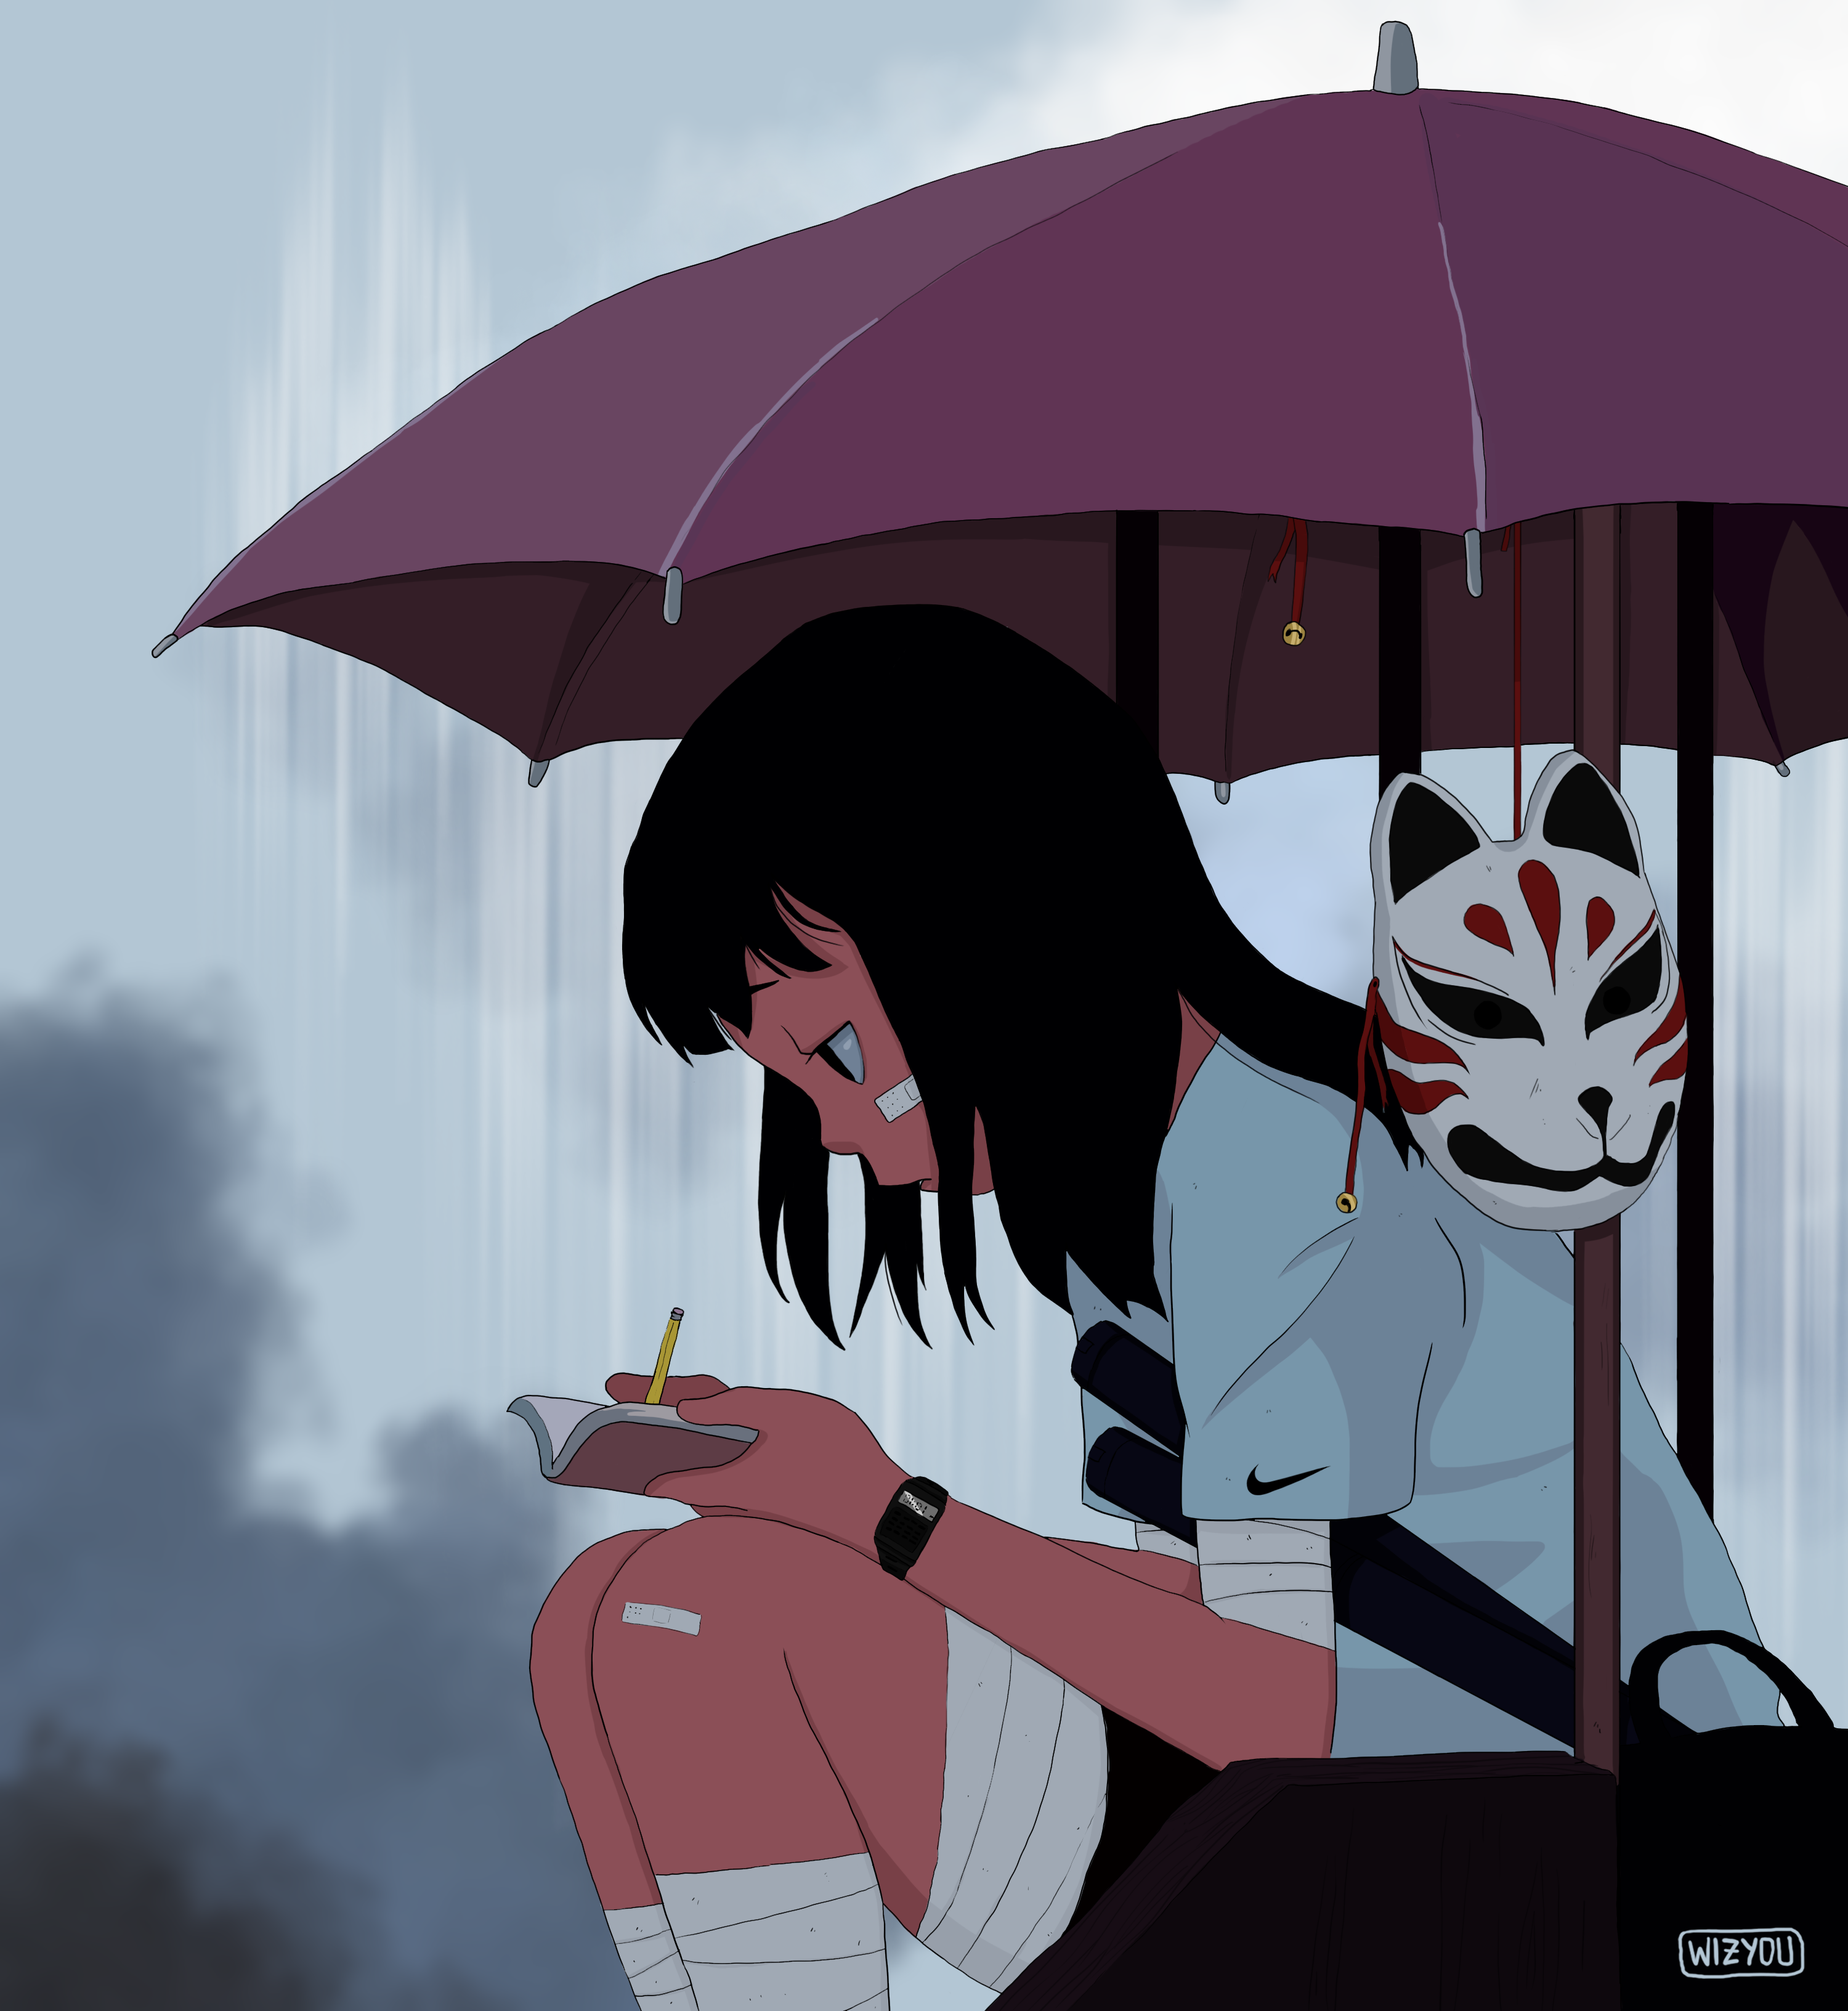 Sad Anime Aesthetic Pictures